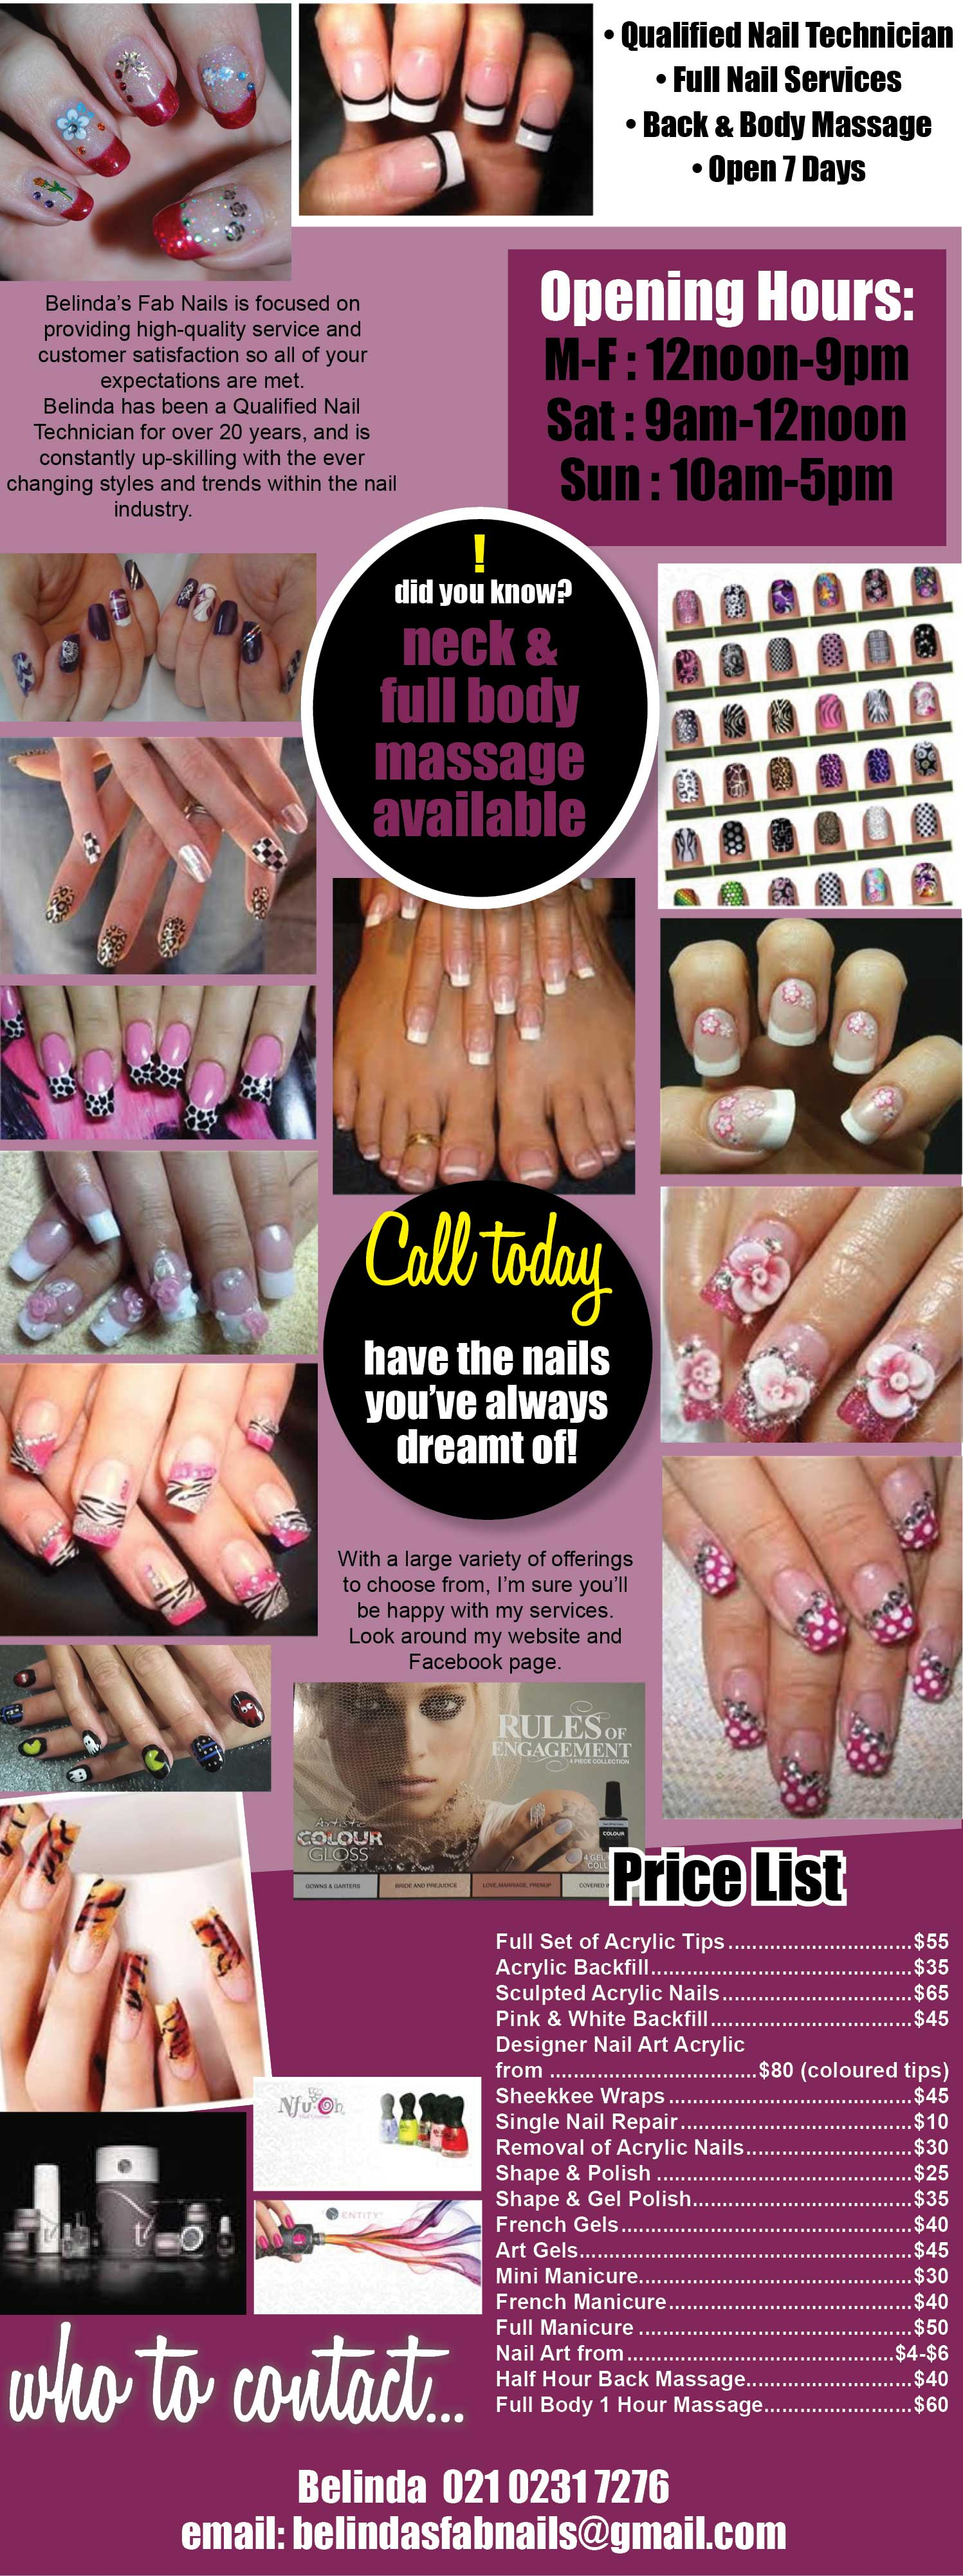 Belinda's Fab Nails is focused on providing high-quality service and customer satisfaction so all of your expectations are met. Qualified Nail Technician, Nail Services, Back & Body Massage, Wanganui.